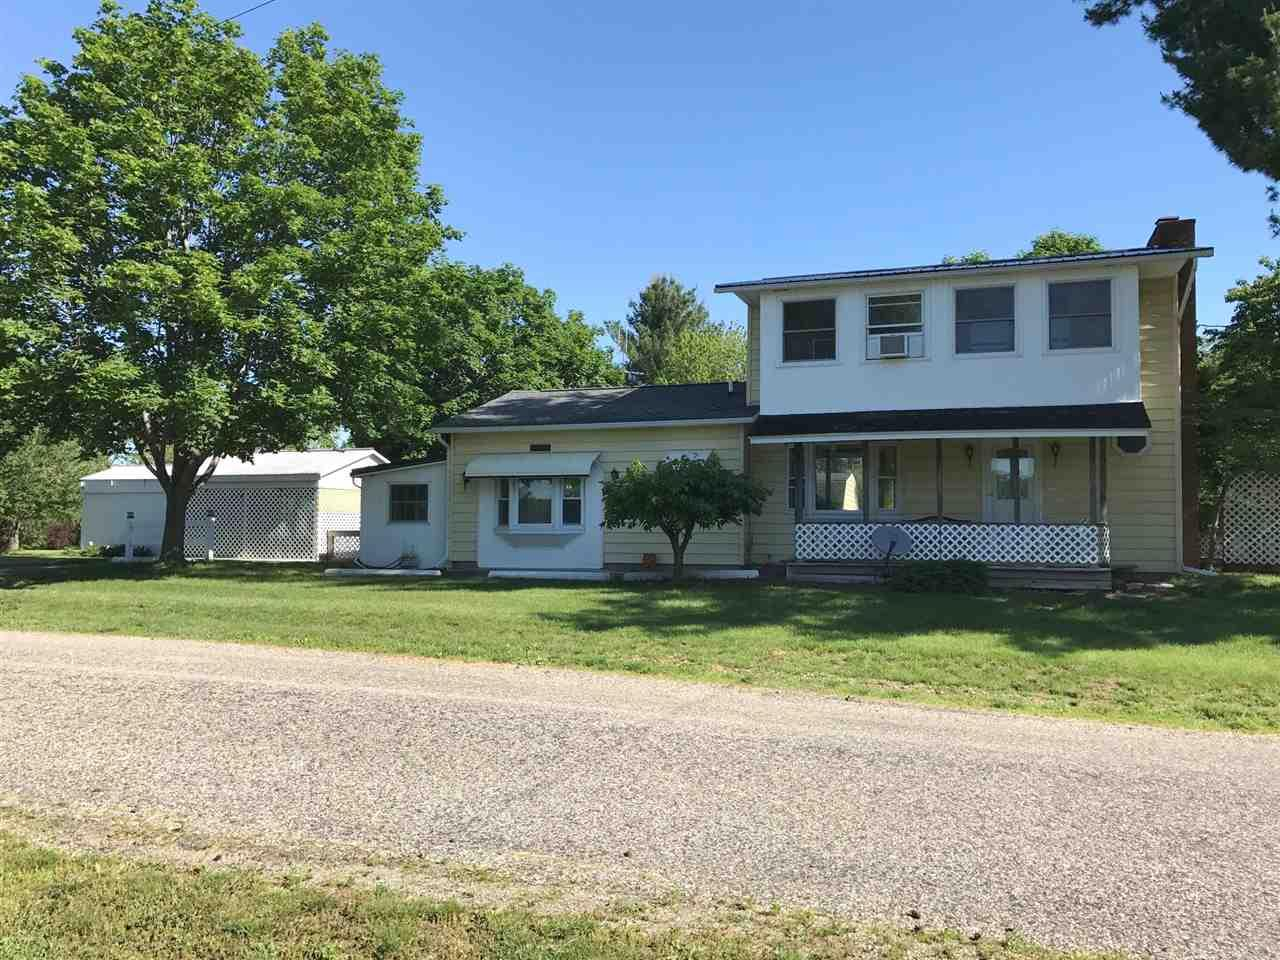 10580 W 650 N, Orland, IN 46776